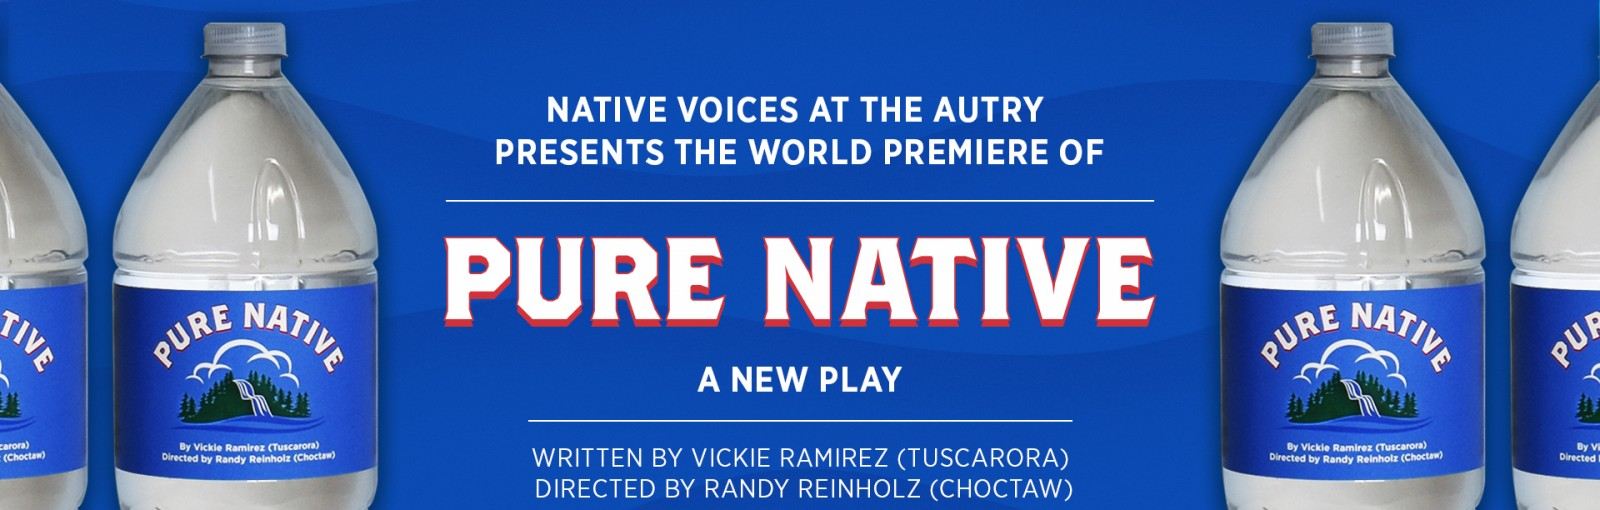 "Native Voices at the Autry Presents the World Premiere of ""Pure Native"""